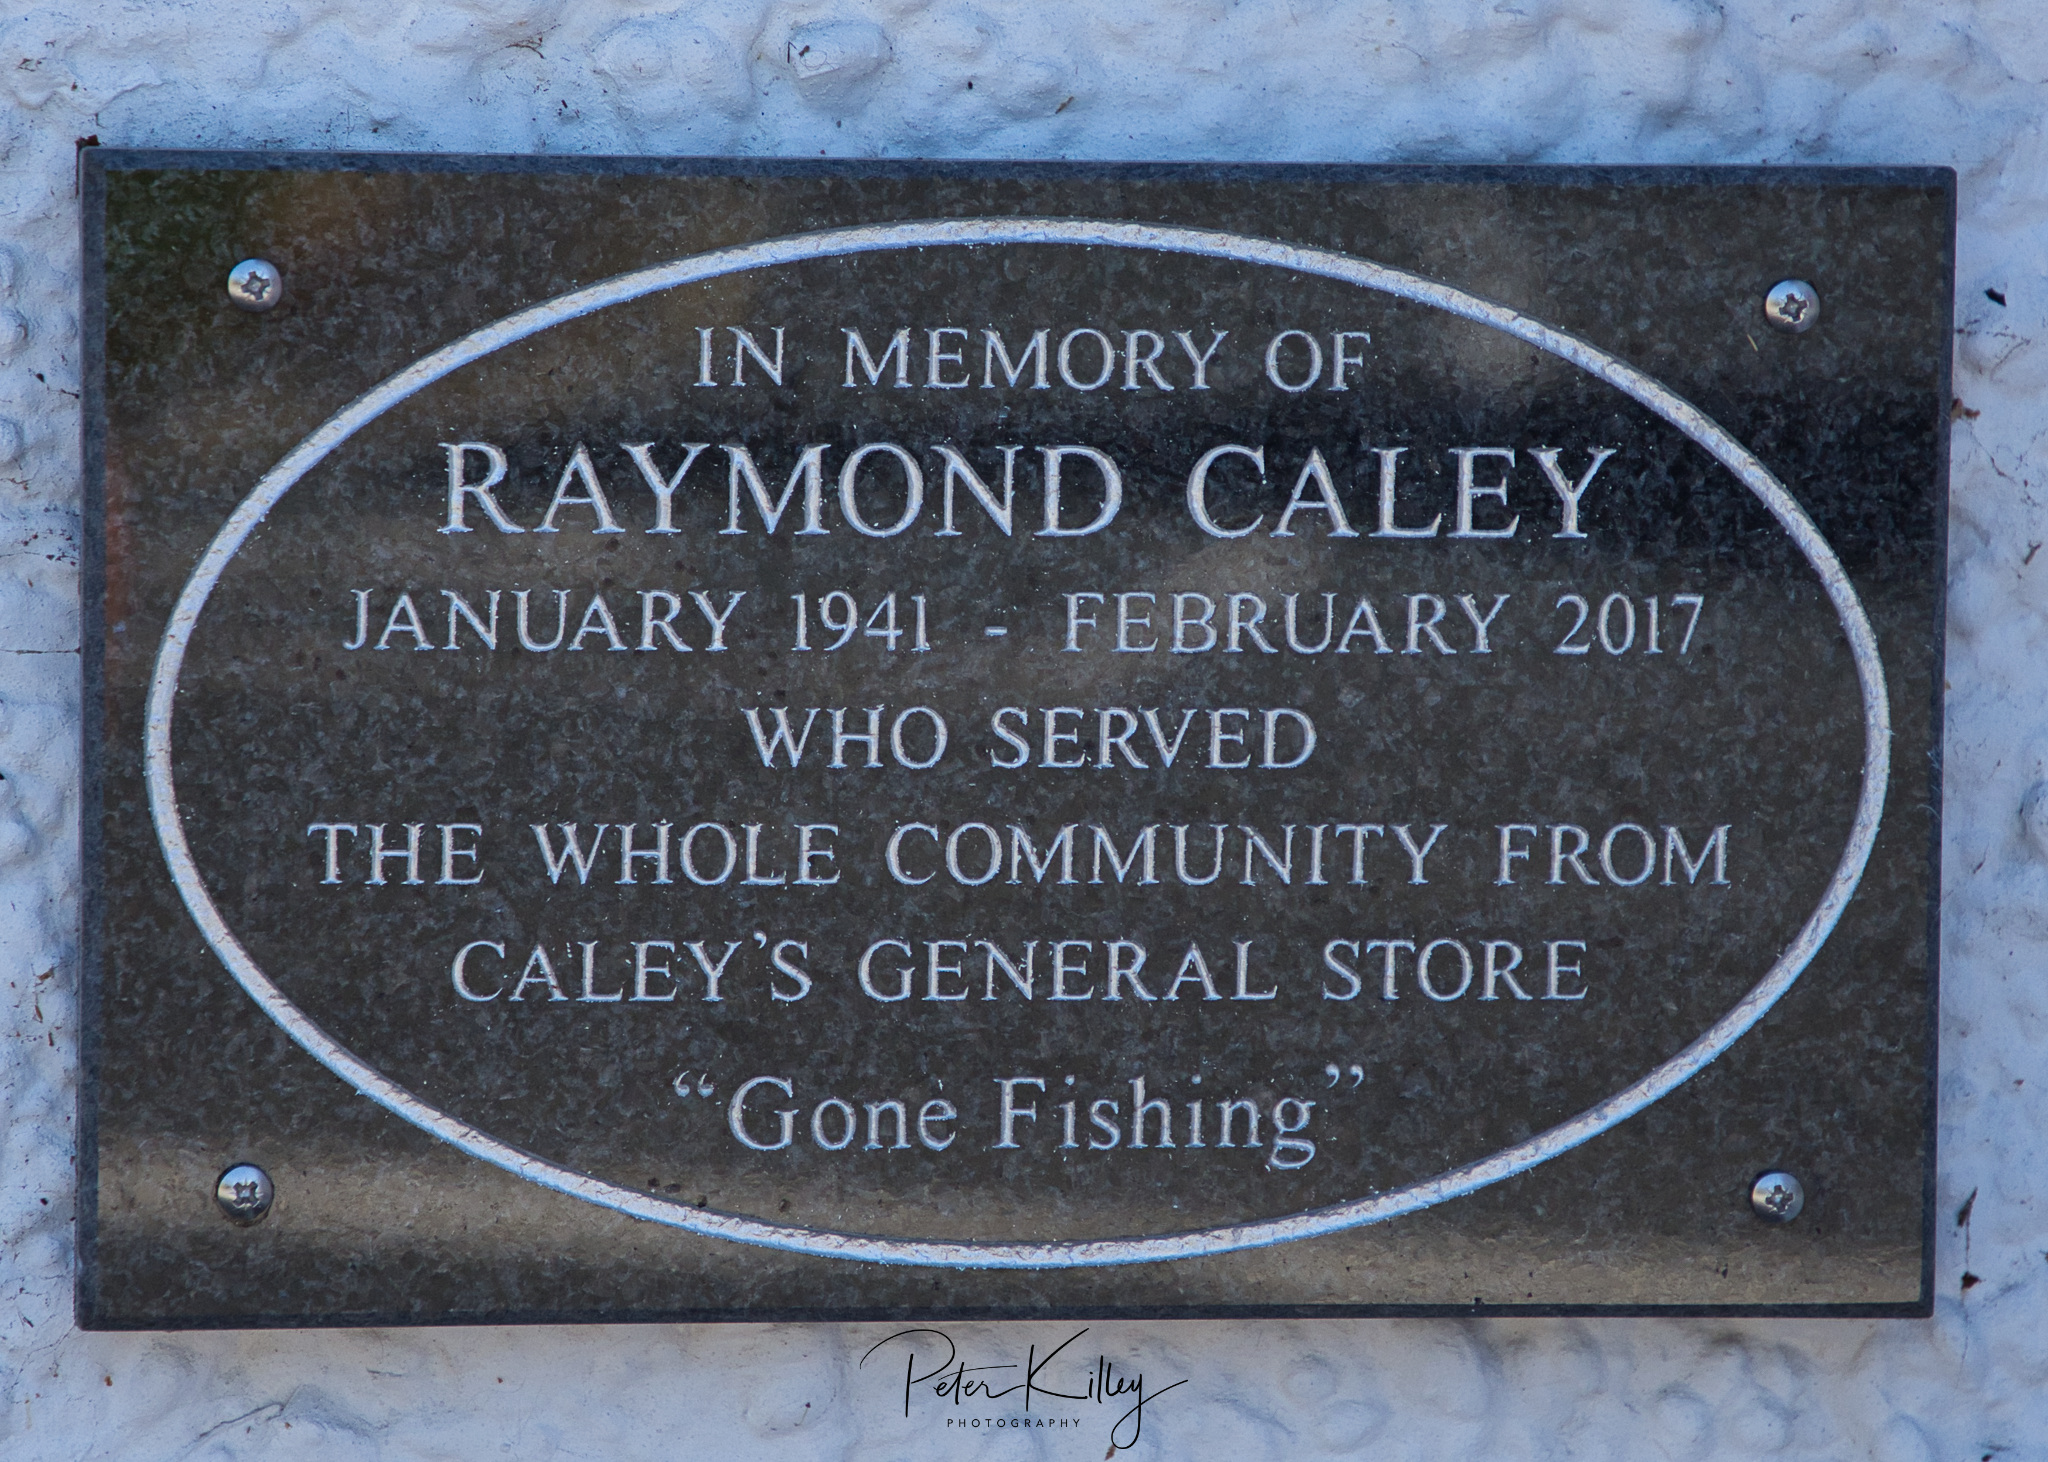 Raymond's Memorial Plaque - www.manxscenes.com